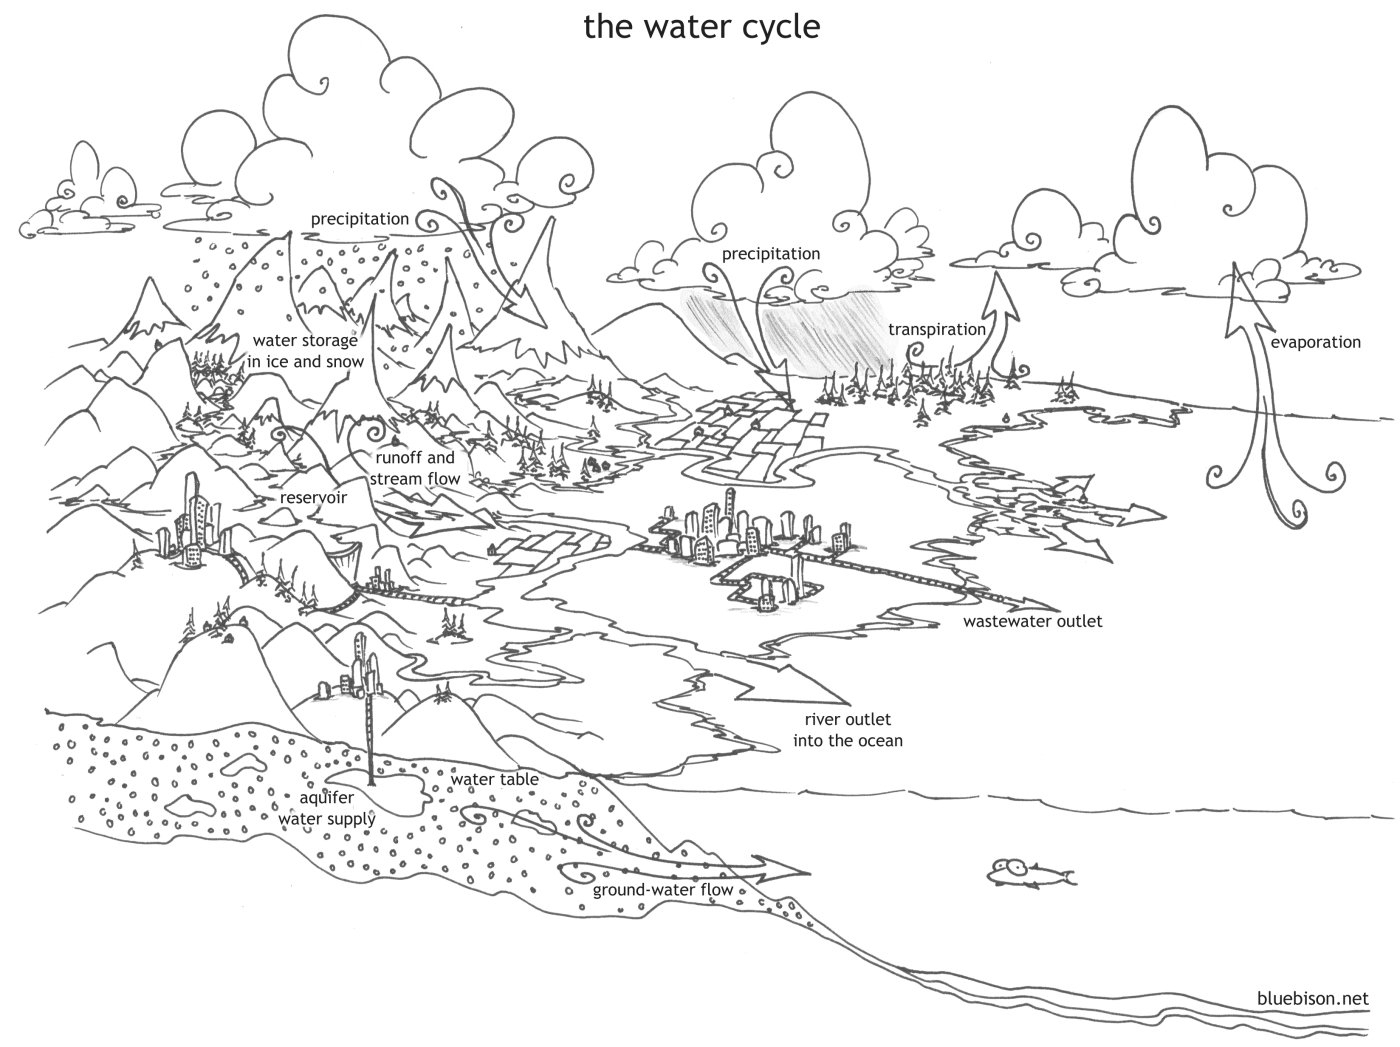 coloring pages the water cycle bluebisonnet